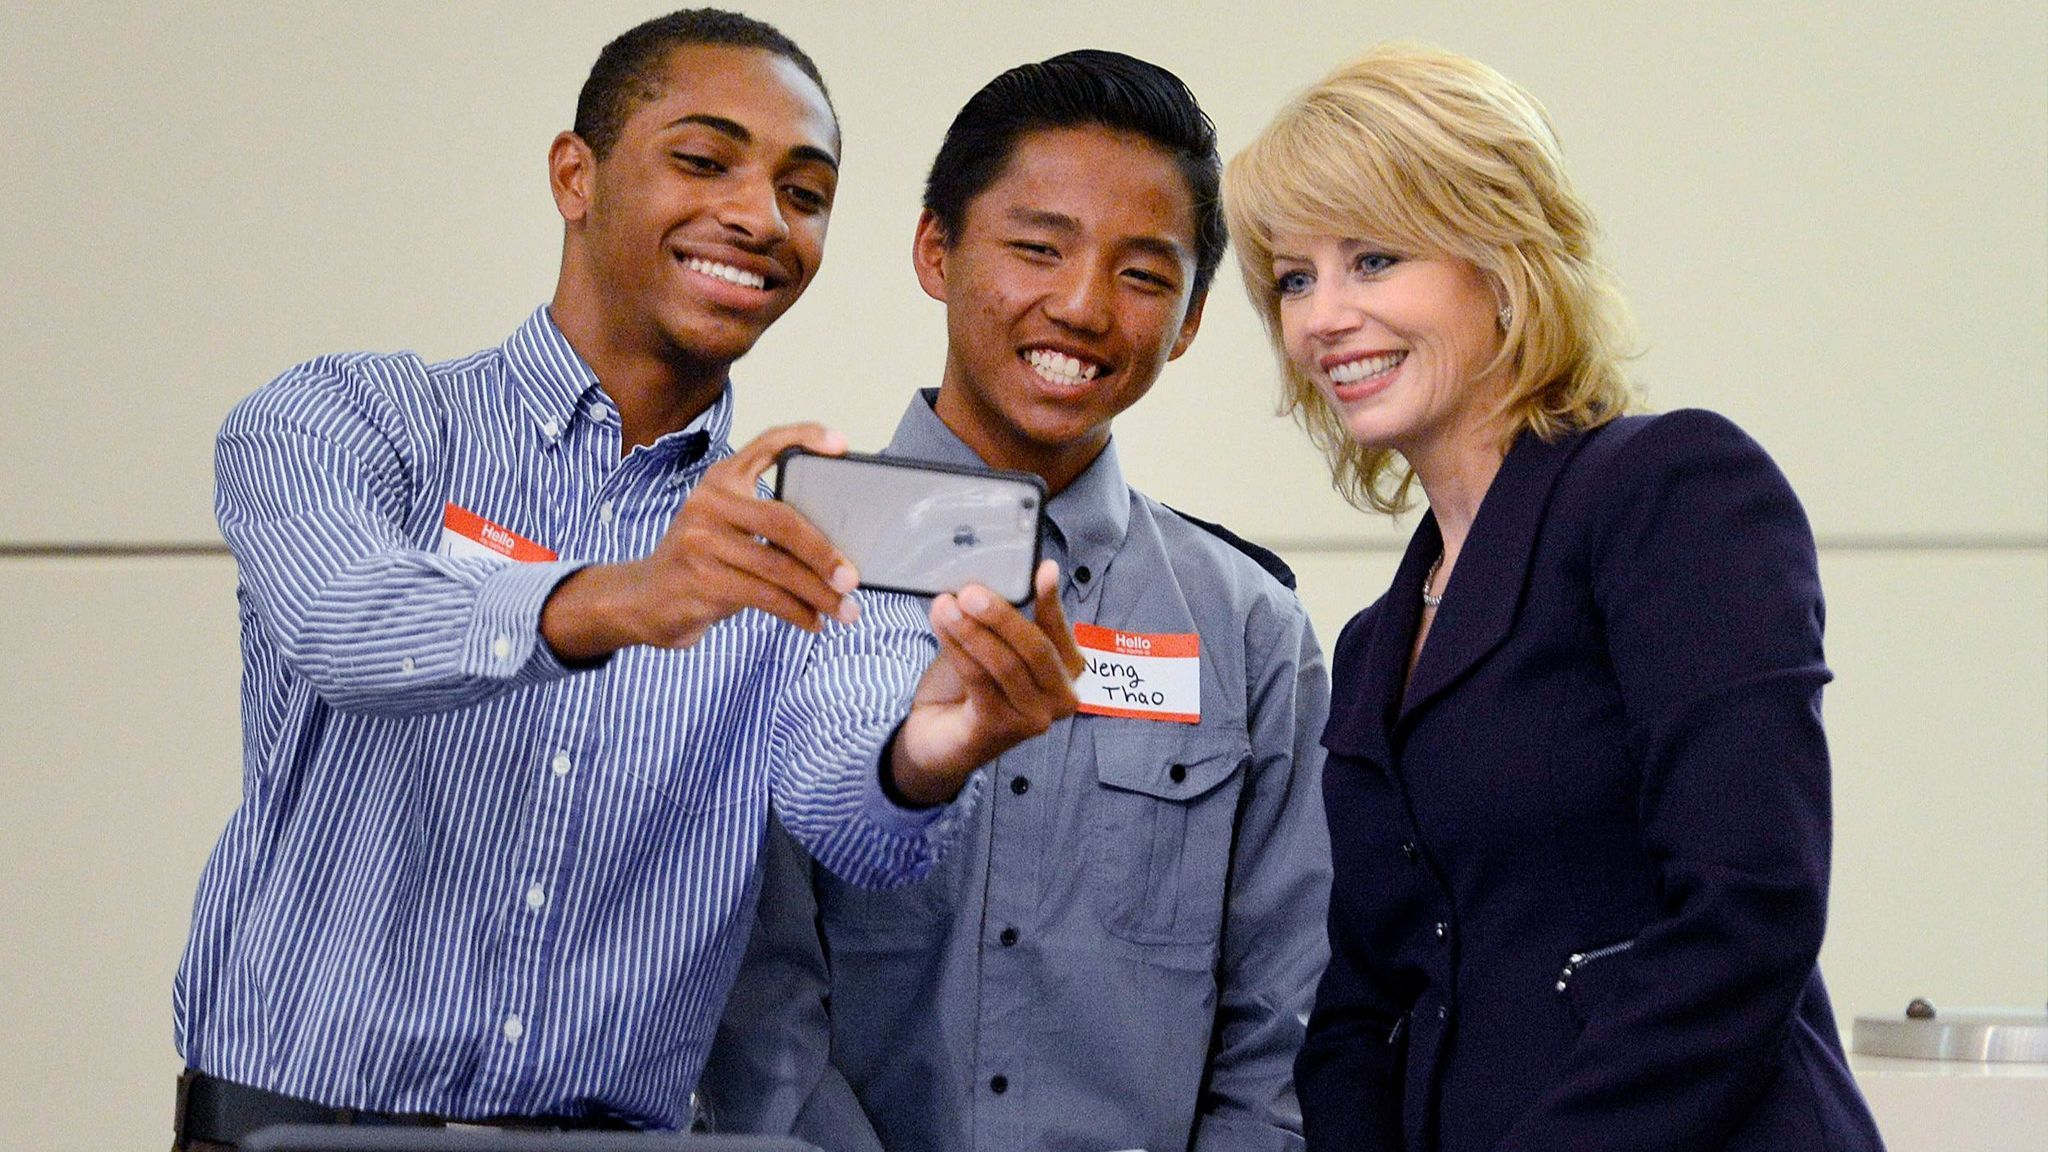 Fresno Mayor Ashley Swearengin poses for a selfie with Youth Commission appointees Jason Phillips, left, and Neng Thao in April 2016.